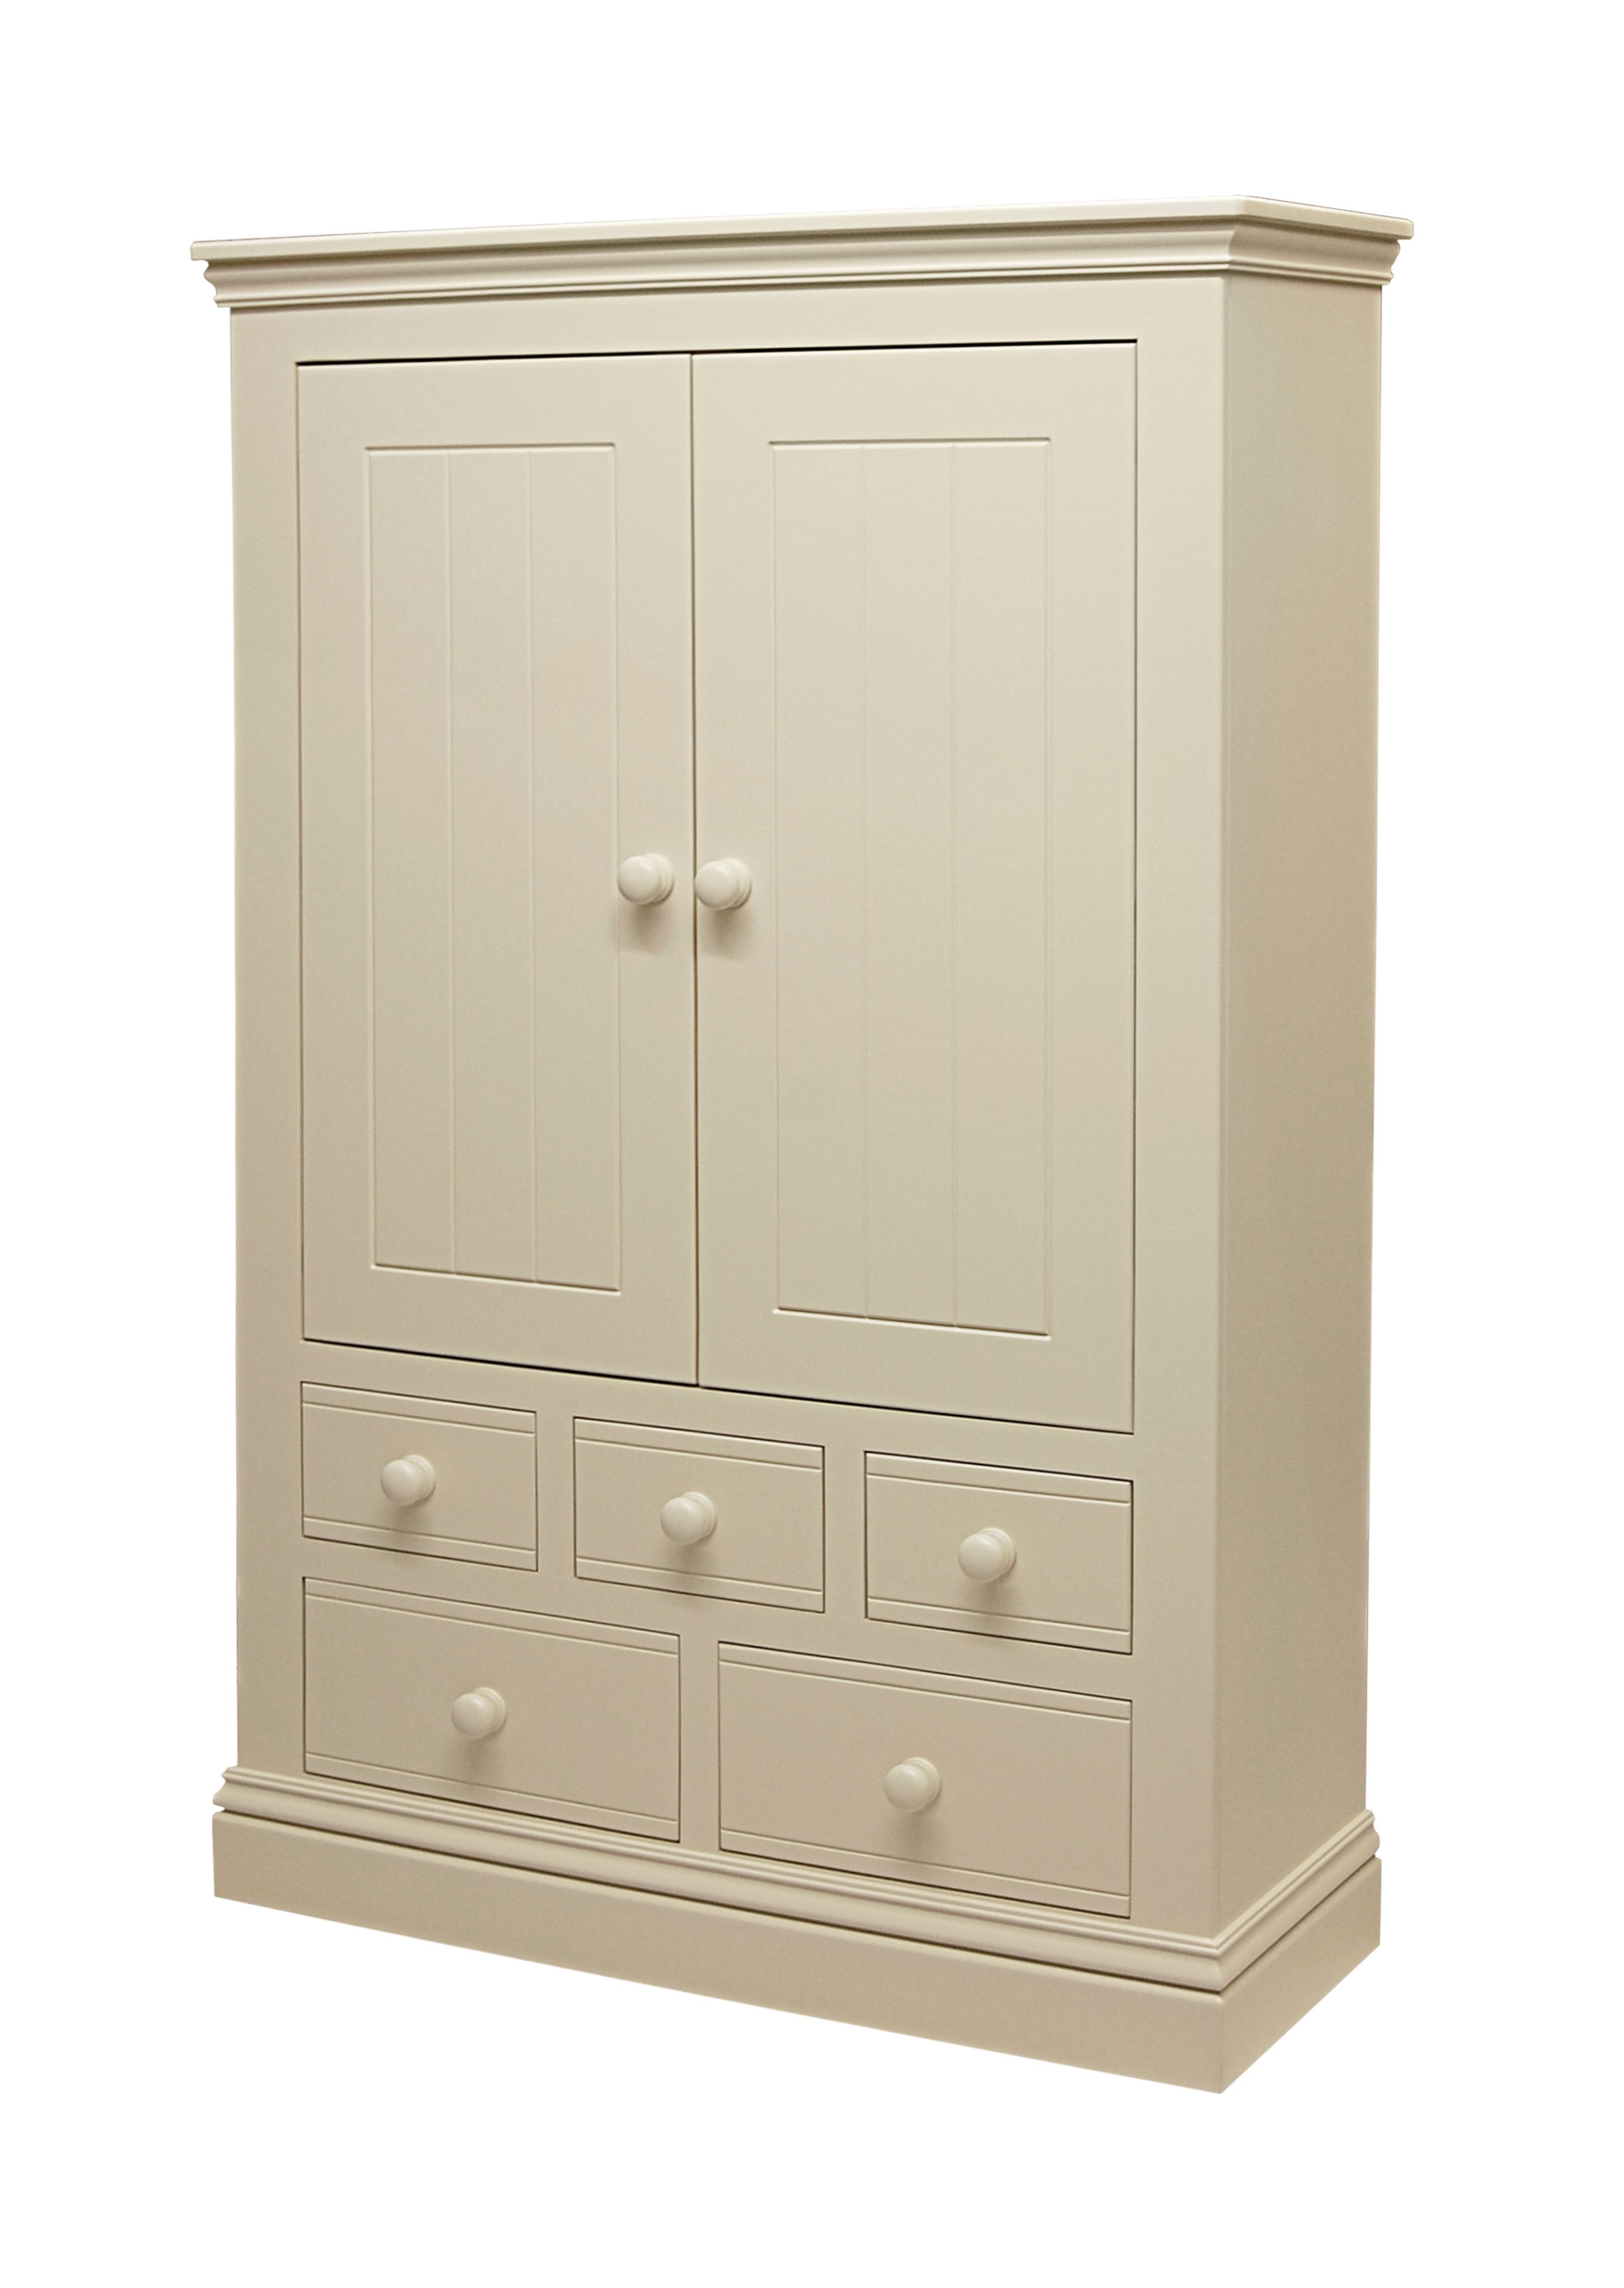 New Hampton 2 Door Wardrobe with 5 Drawers